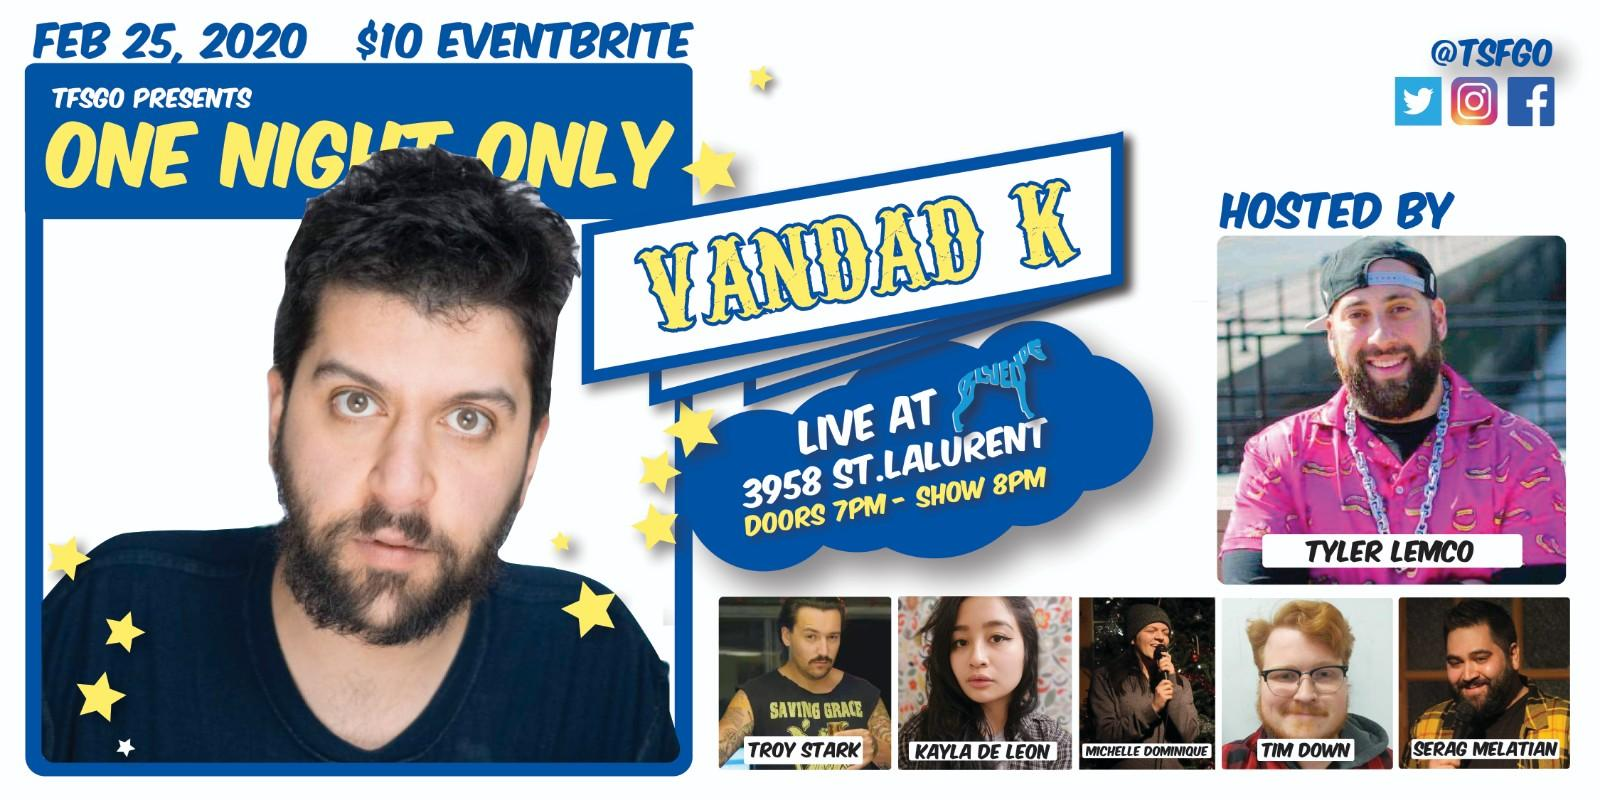 TSFGO Presents: ONE NIGHT ONLY : VANDAD K LIVE AT BLUE DOG